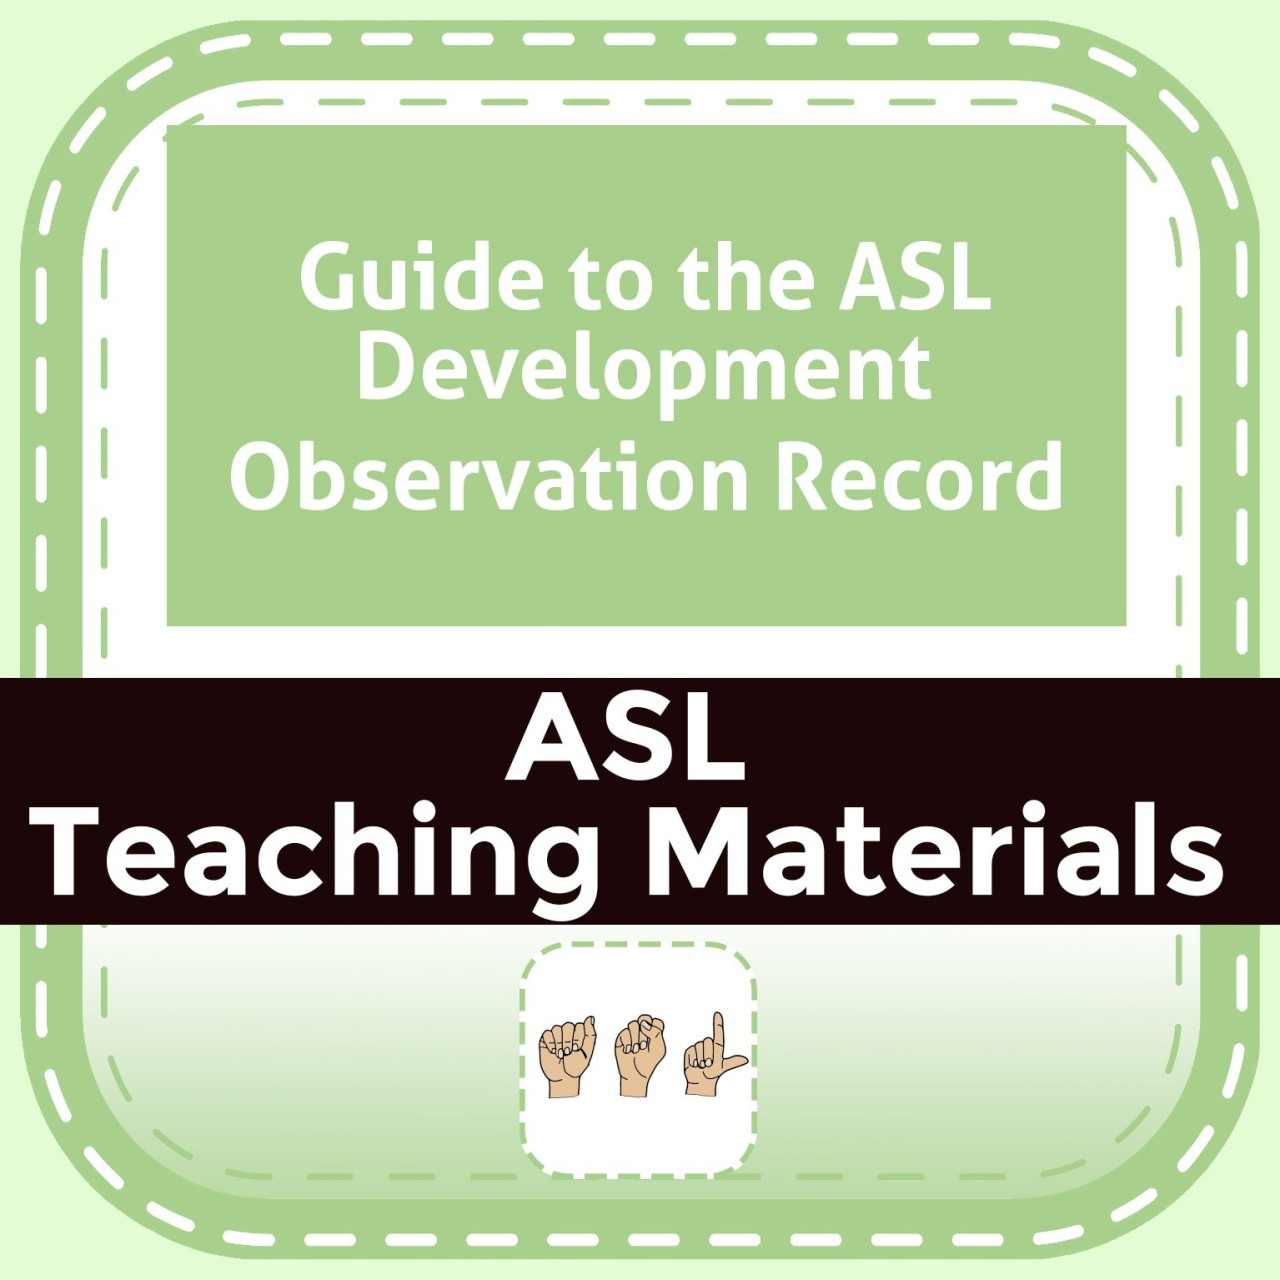 Guide to the ASL Development Observation Record